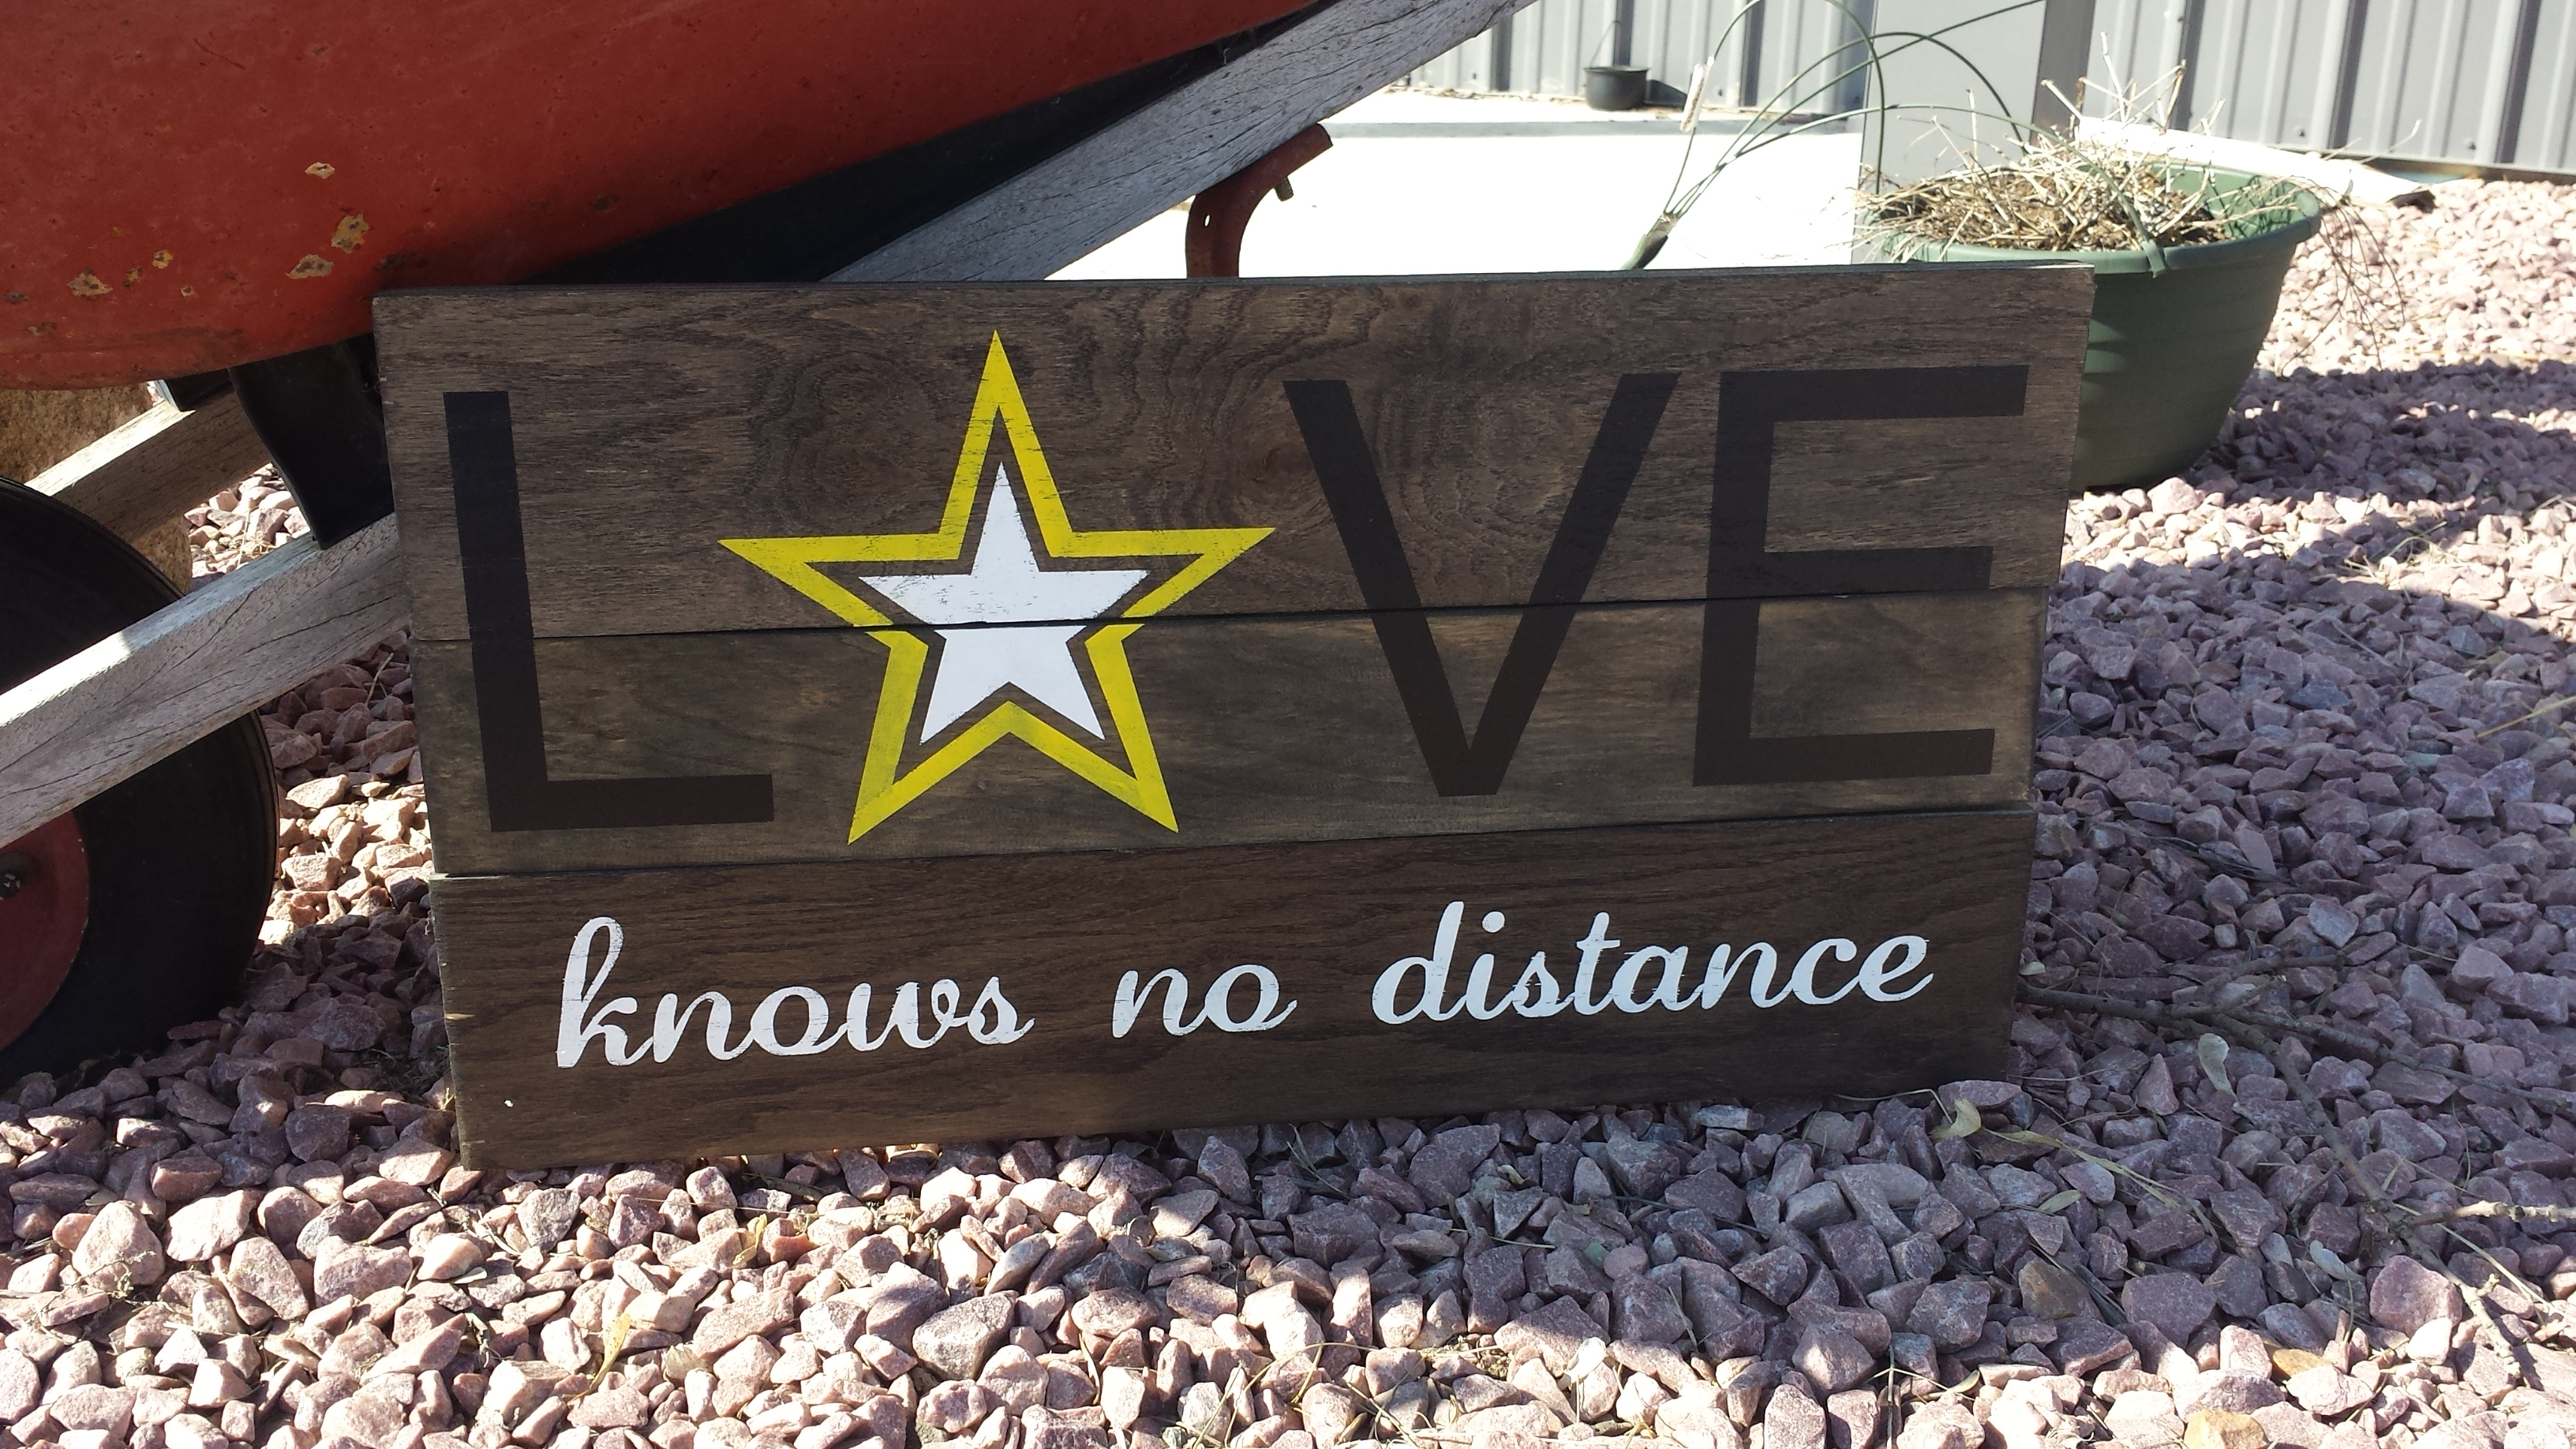 love-knows-no-distance-army-stencil-painted-on-sign.jpg